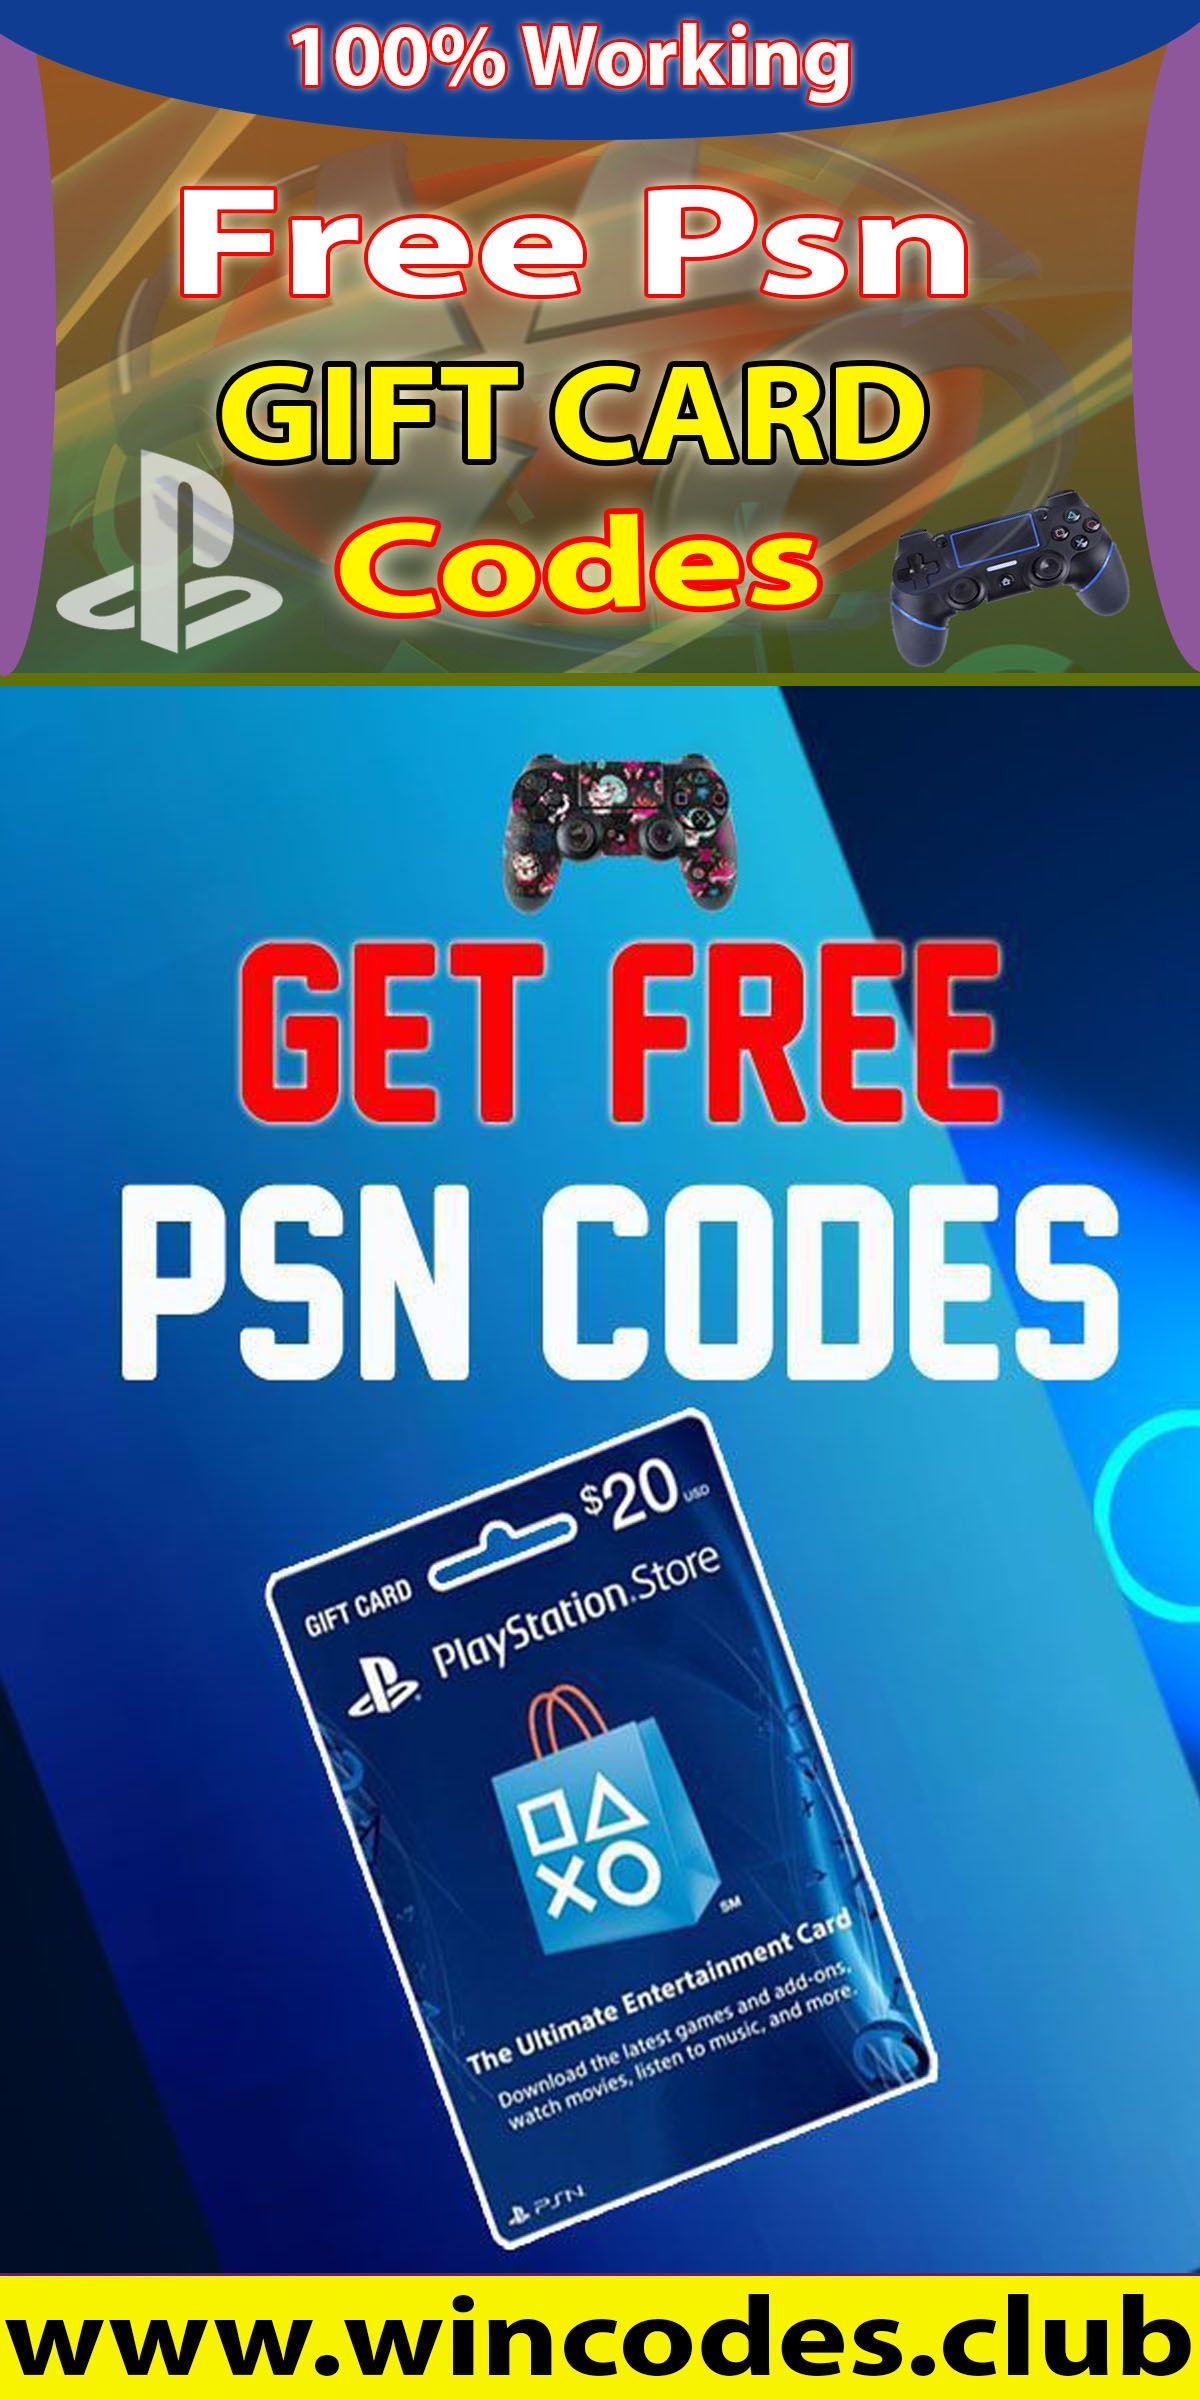 Free PSN Codes Playstation in 2020 Coding, Gift card, Free